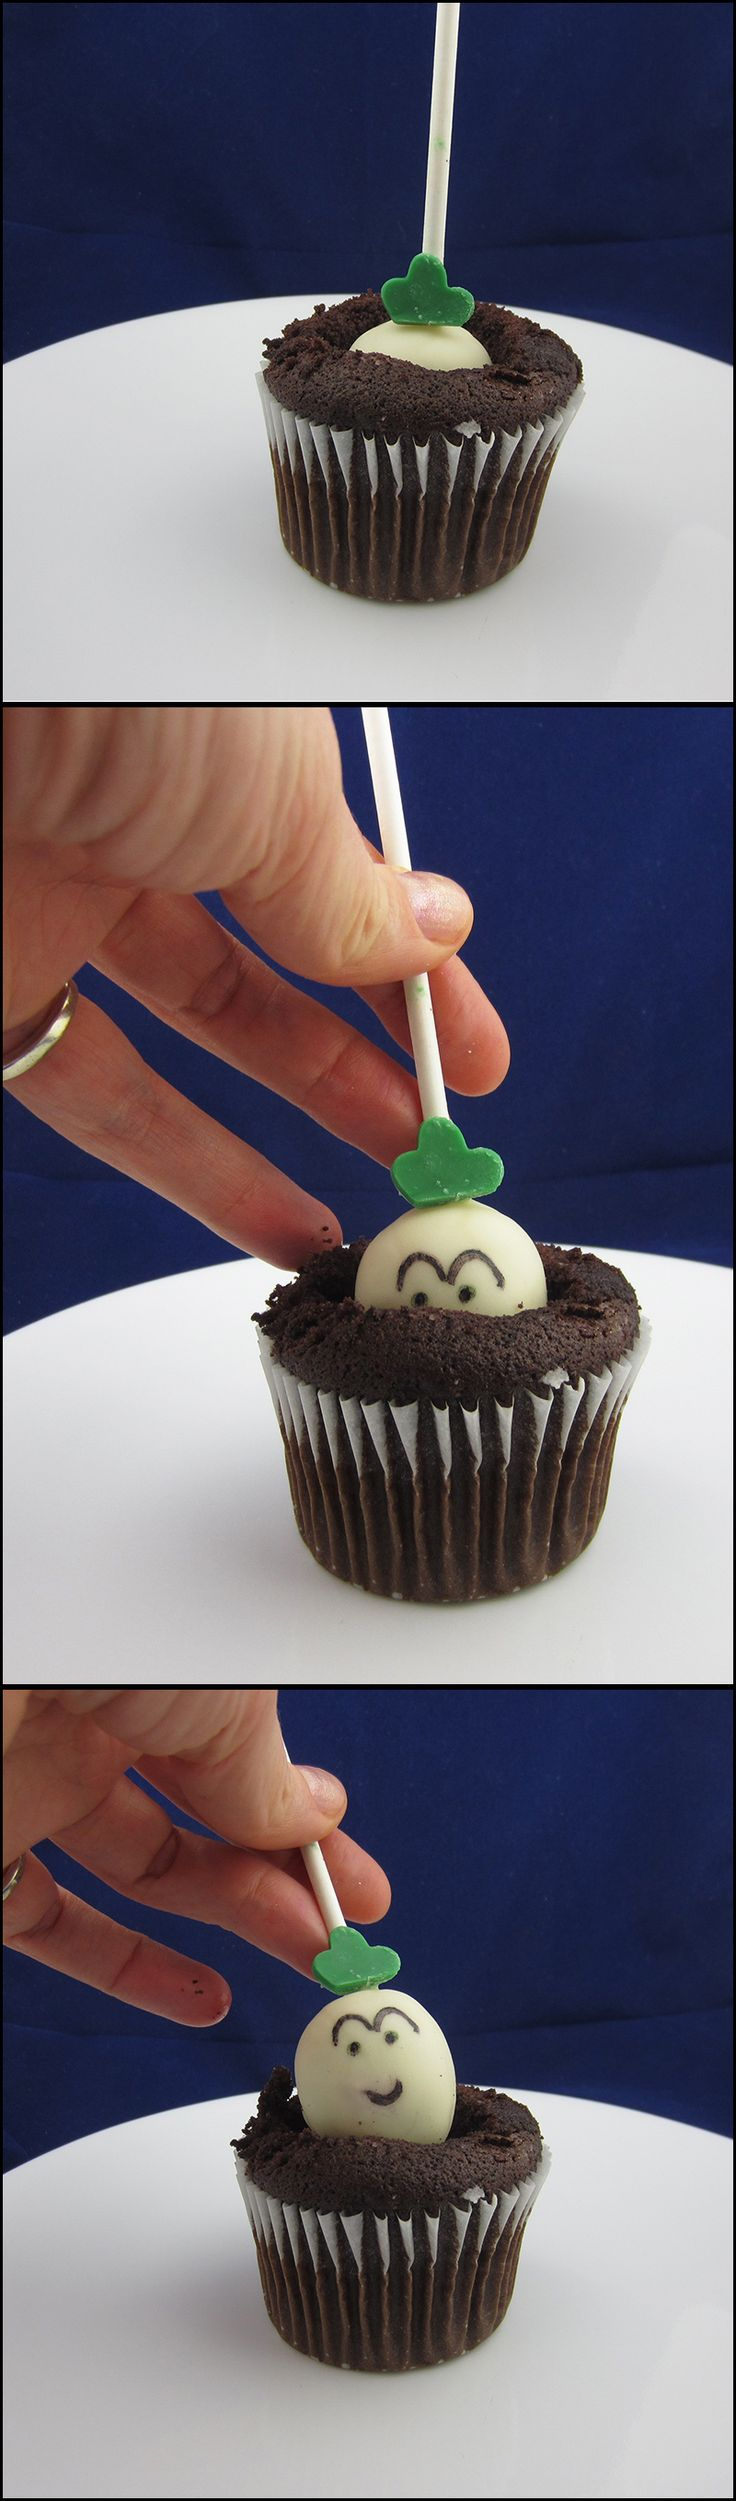 "http://www.snackordie.com/super-mario-bros-cake-pop-turnips/  These cake pop turnips are modeled after the vegetable from Super Mario Bros. 2 and pulled out of a chocolate cupcake. This cake pop and cupcake combo will work will for non-video game related cake pop vegetables pulled from the chocolate cupcake ""ground."""